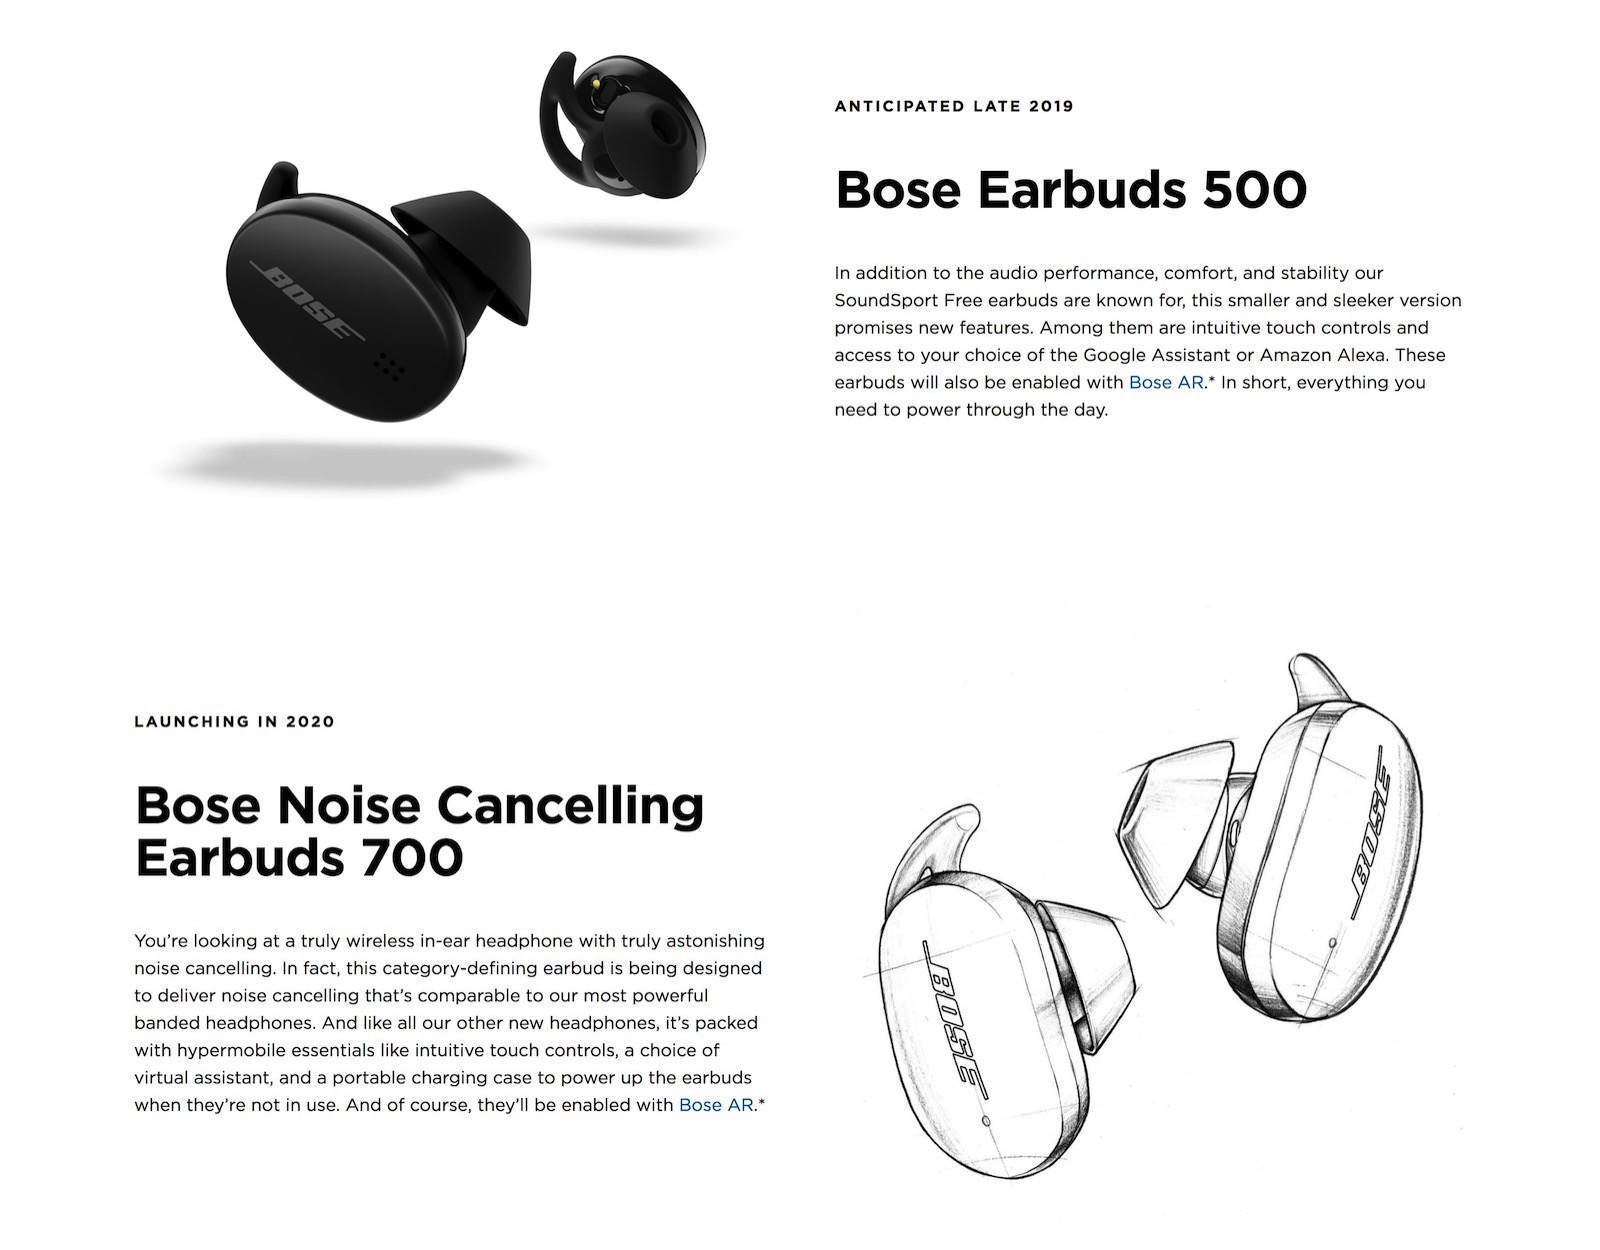 Bose-Earbuds-with-noise-cancelling.jpg